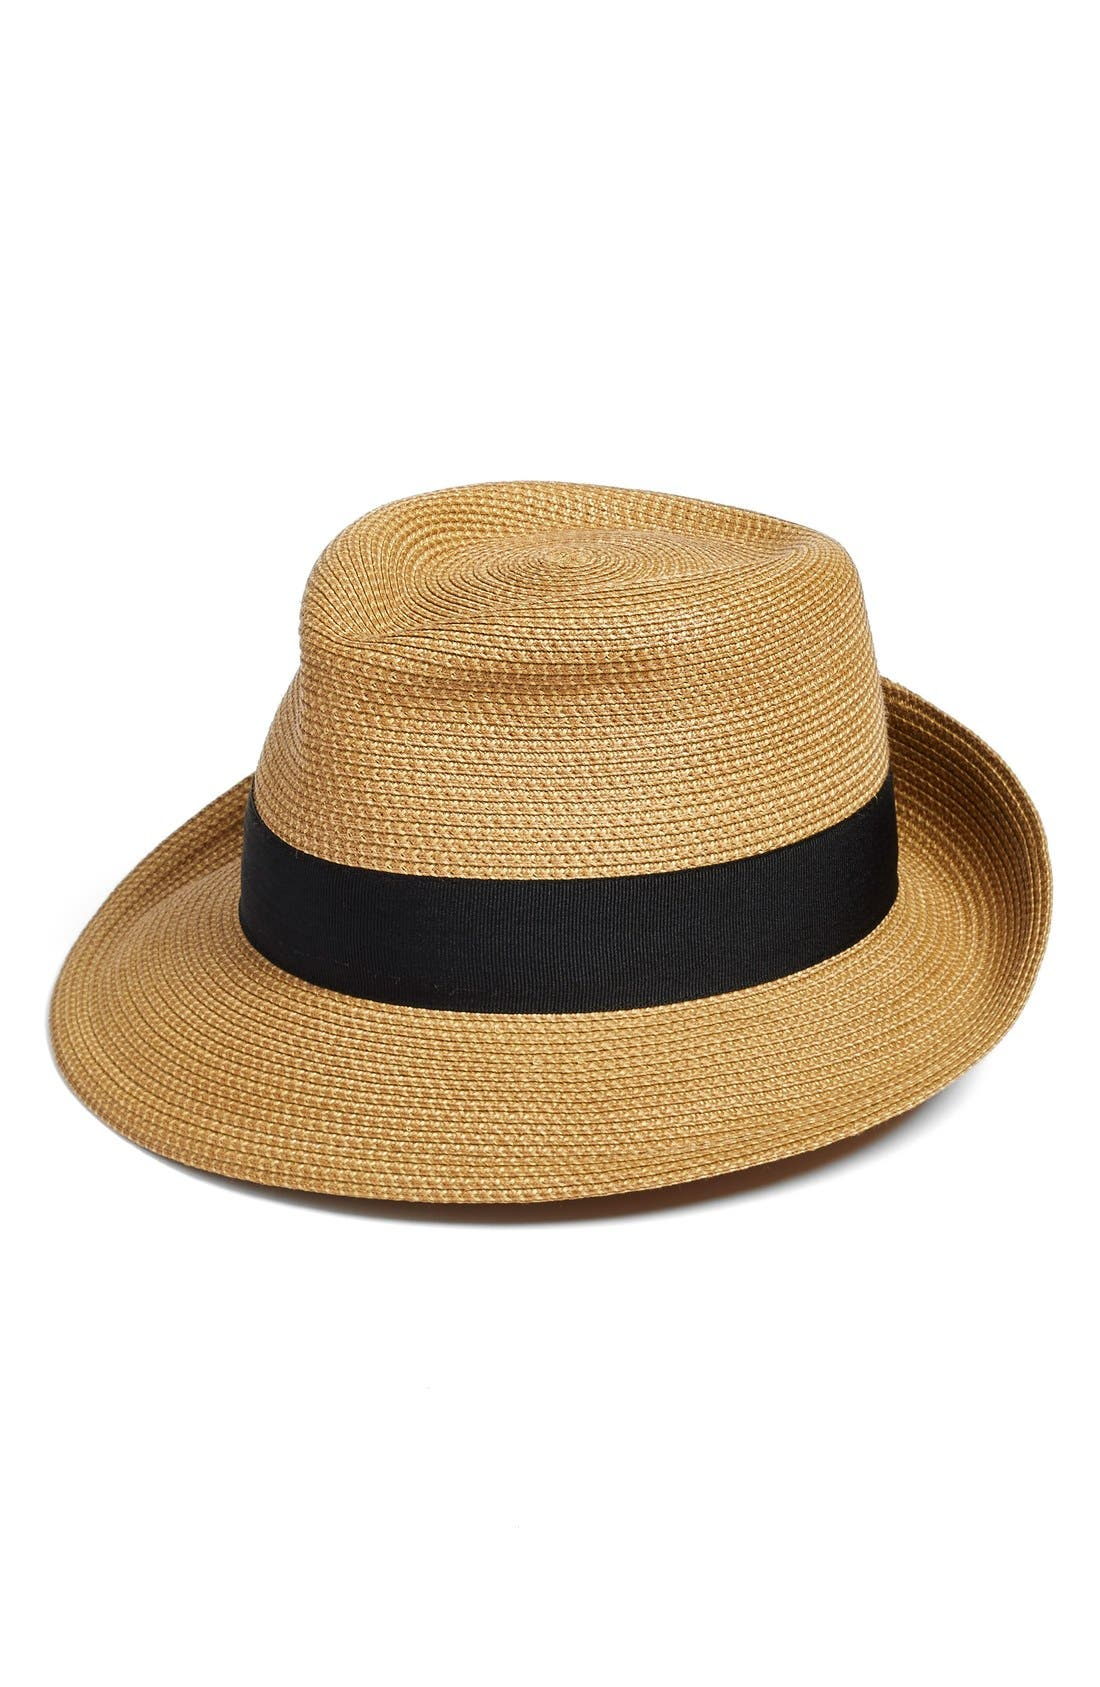 'Classic' Squishee<sup>®</sup> Packable Fedora Sun Hat,                         Main,                         color, NATURAL/ BLACK